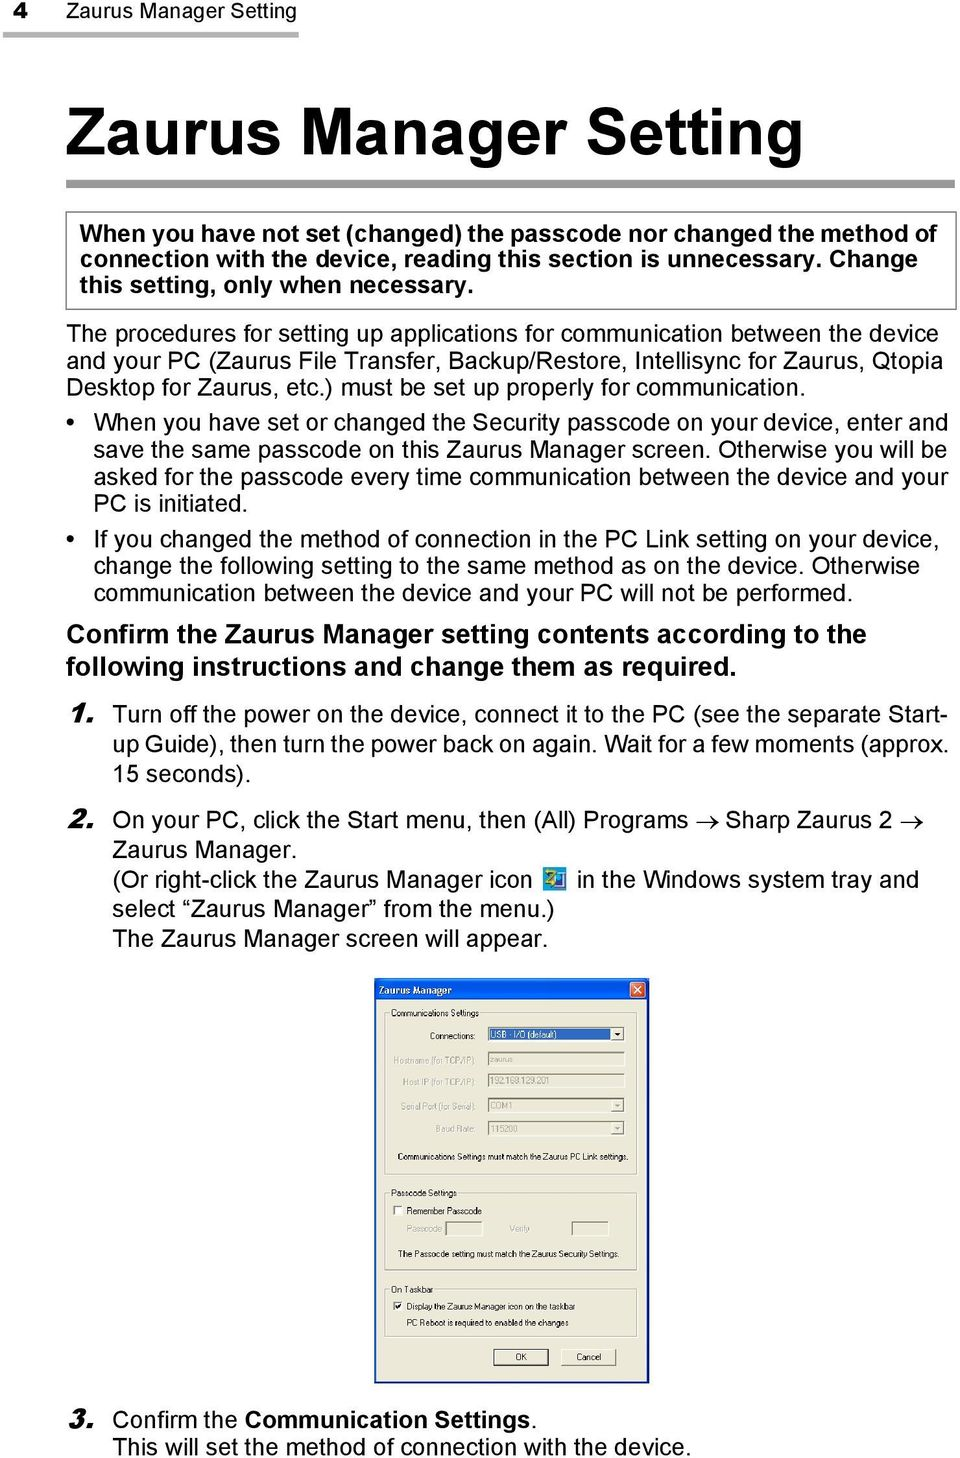 The procedures for setting up applications for communication between the device and your PC (Zaurus File Transfer, Backup/Restore, Intellisync for Zaurus, Qtopia Desktop for Zaurus, etc.